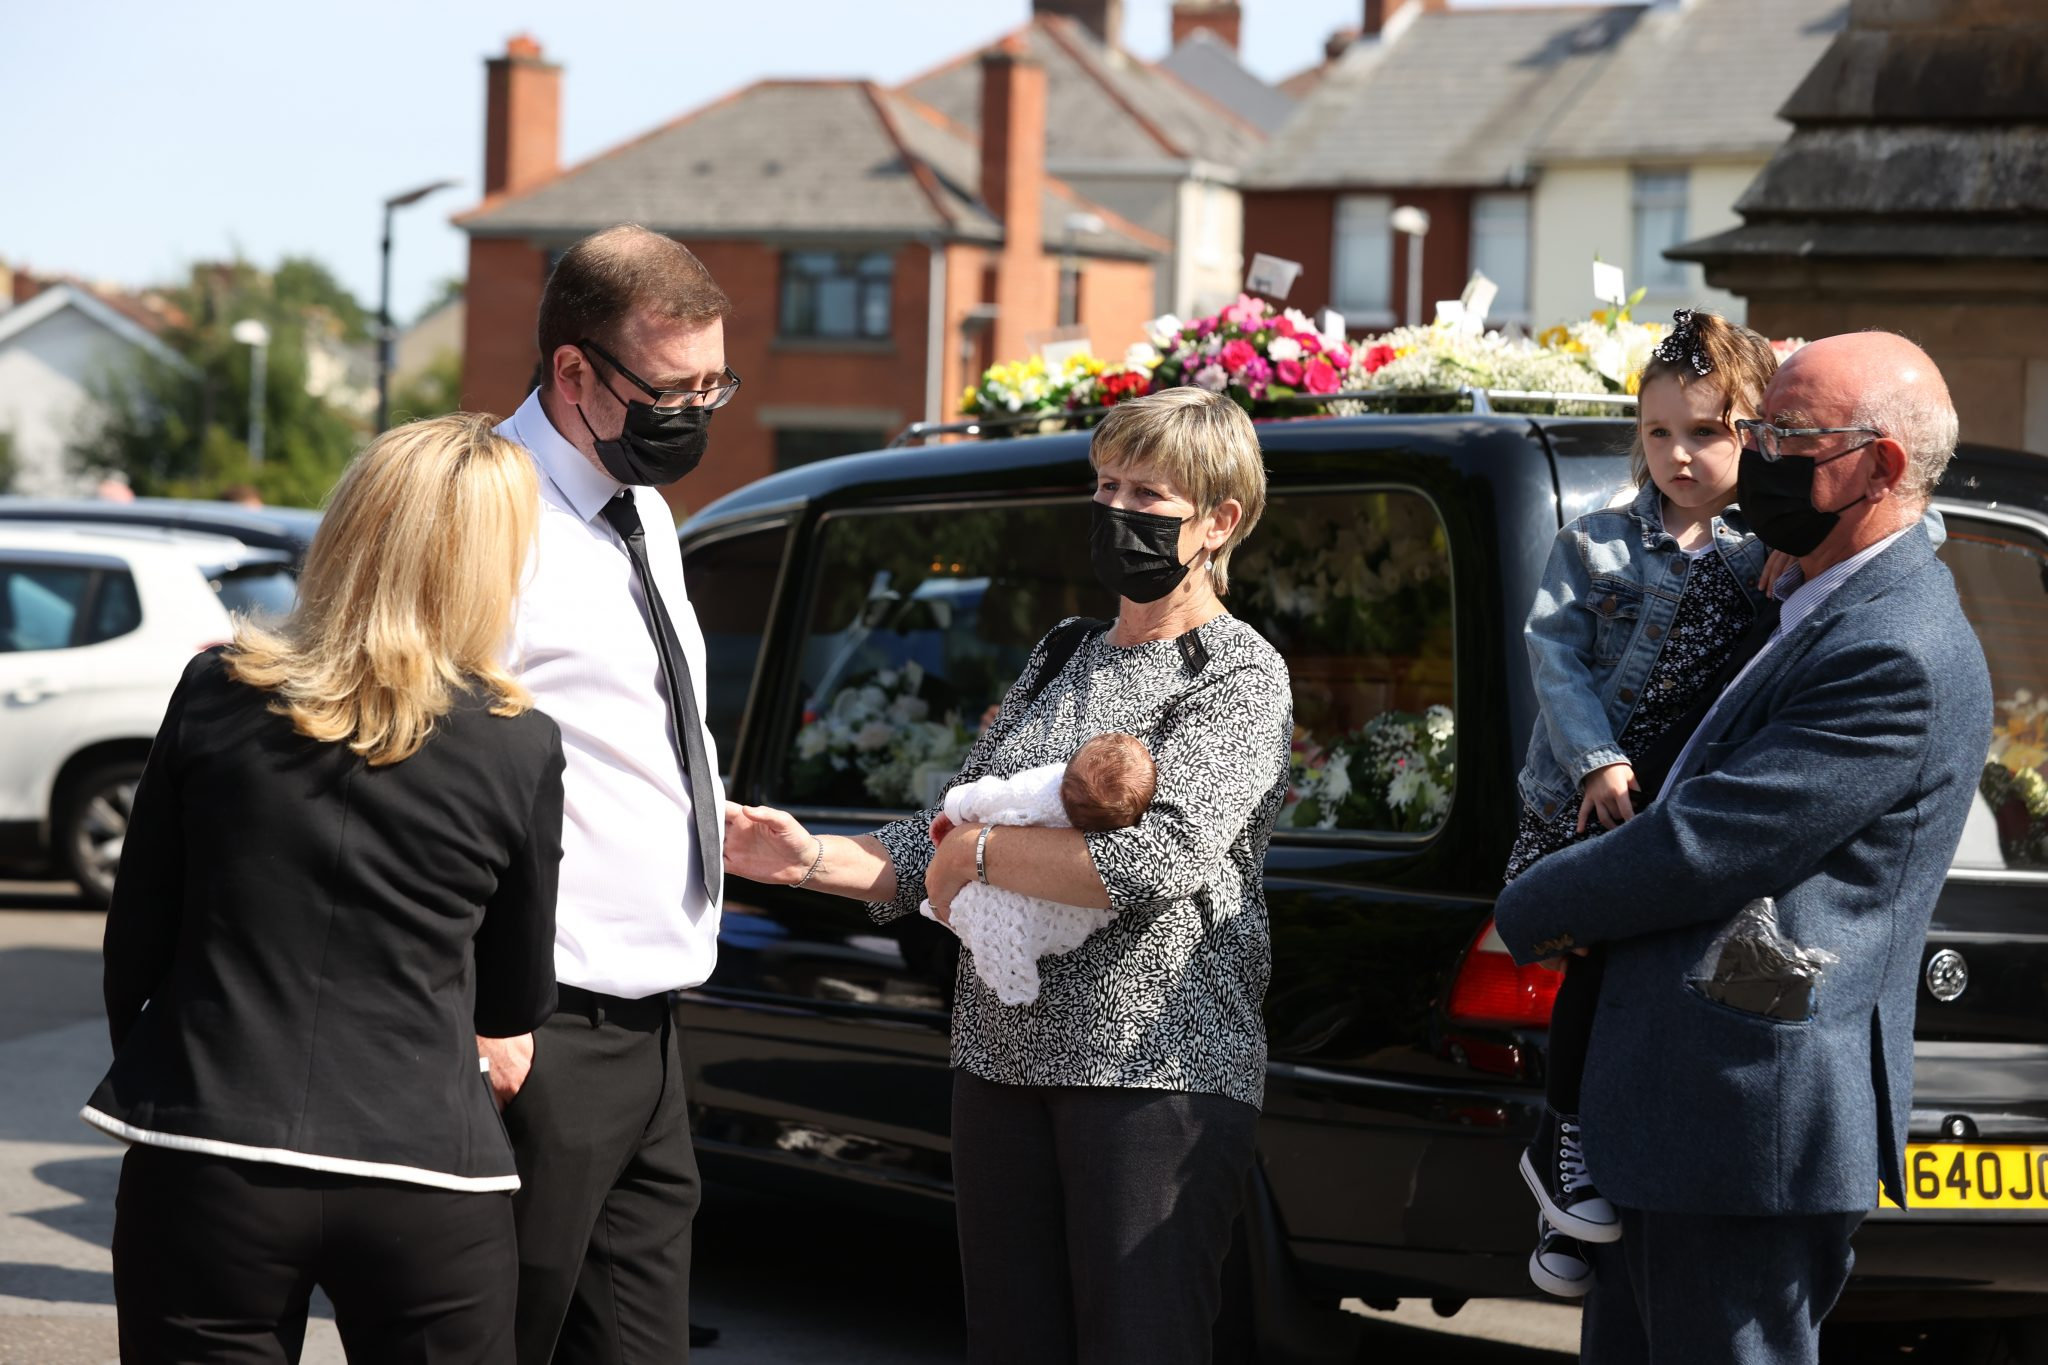 Josh Willis with his new-born daughter Eviegrace, being carried by a relative (name not known) after the coffin of Samantha Willis (nee Curran) was taken from St Columb's Church in Derry, after her funeral